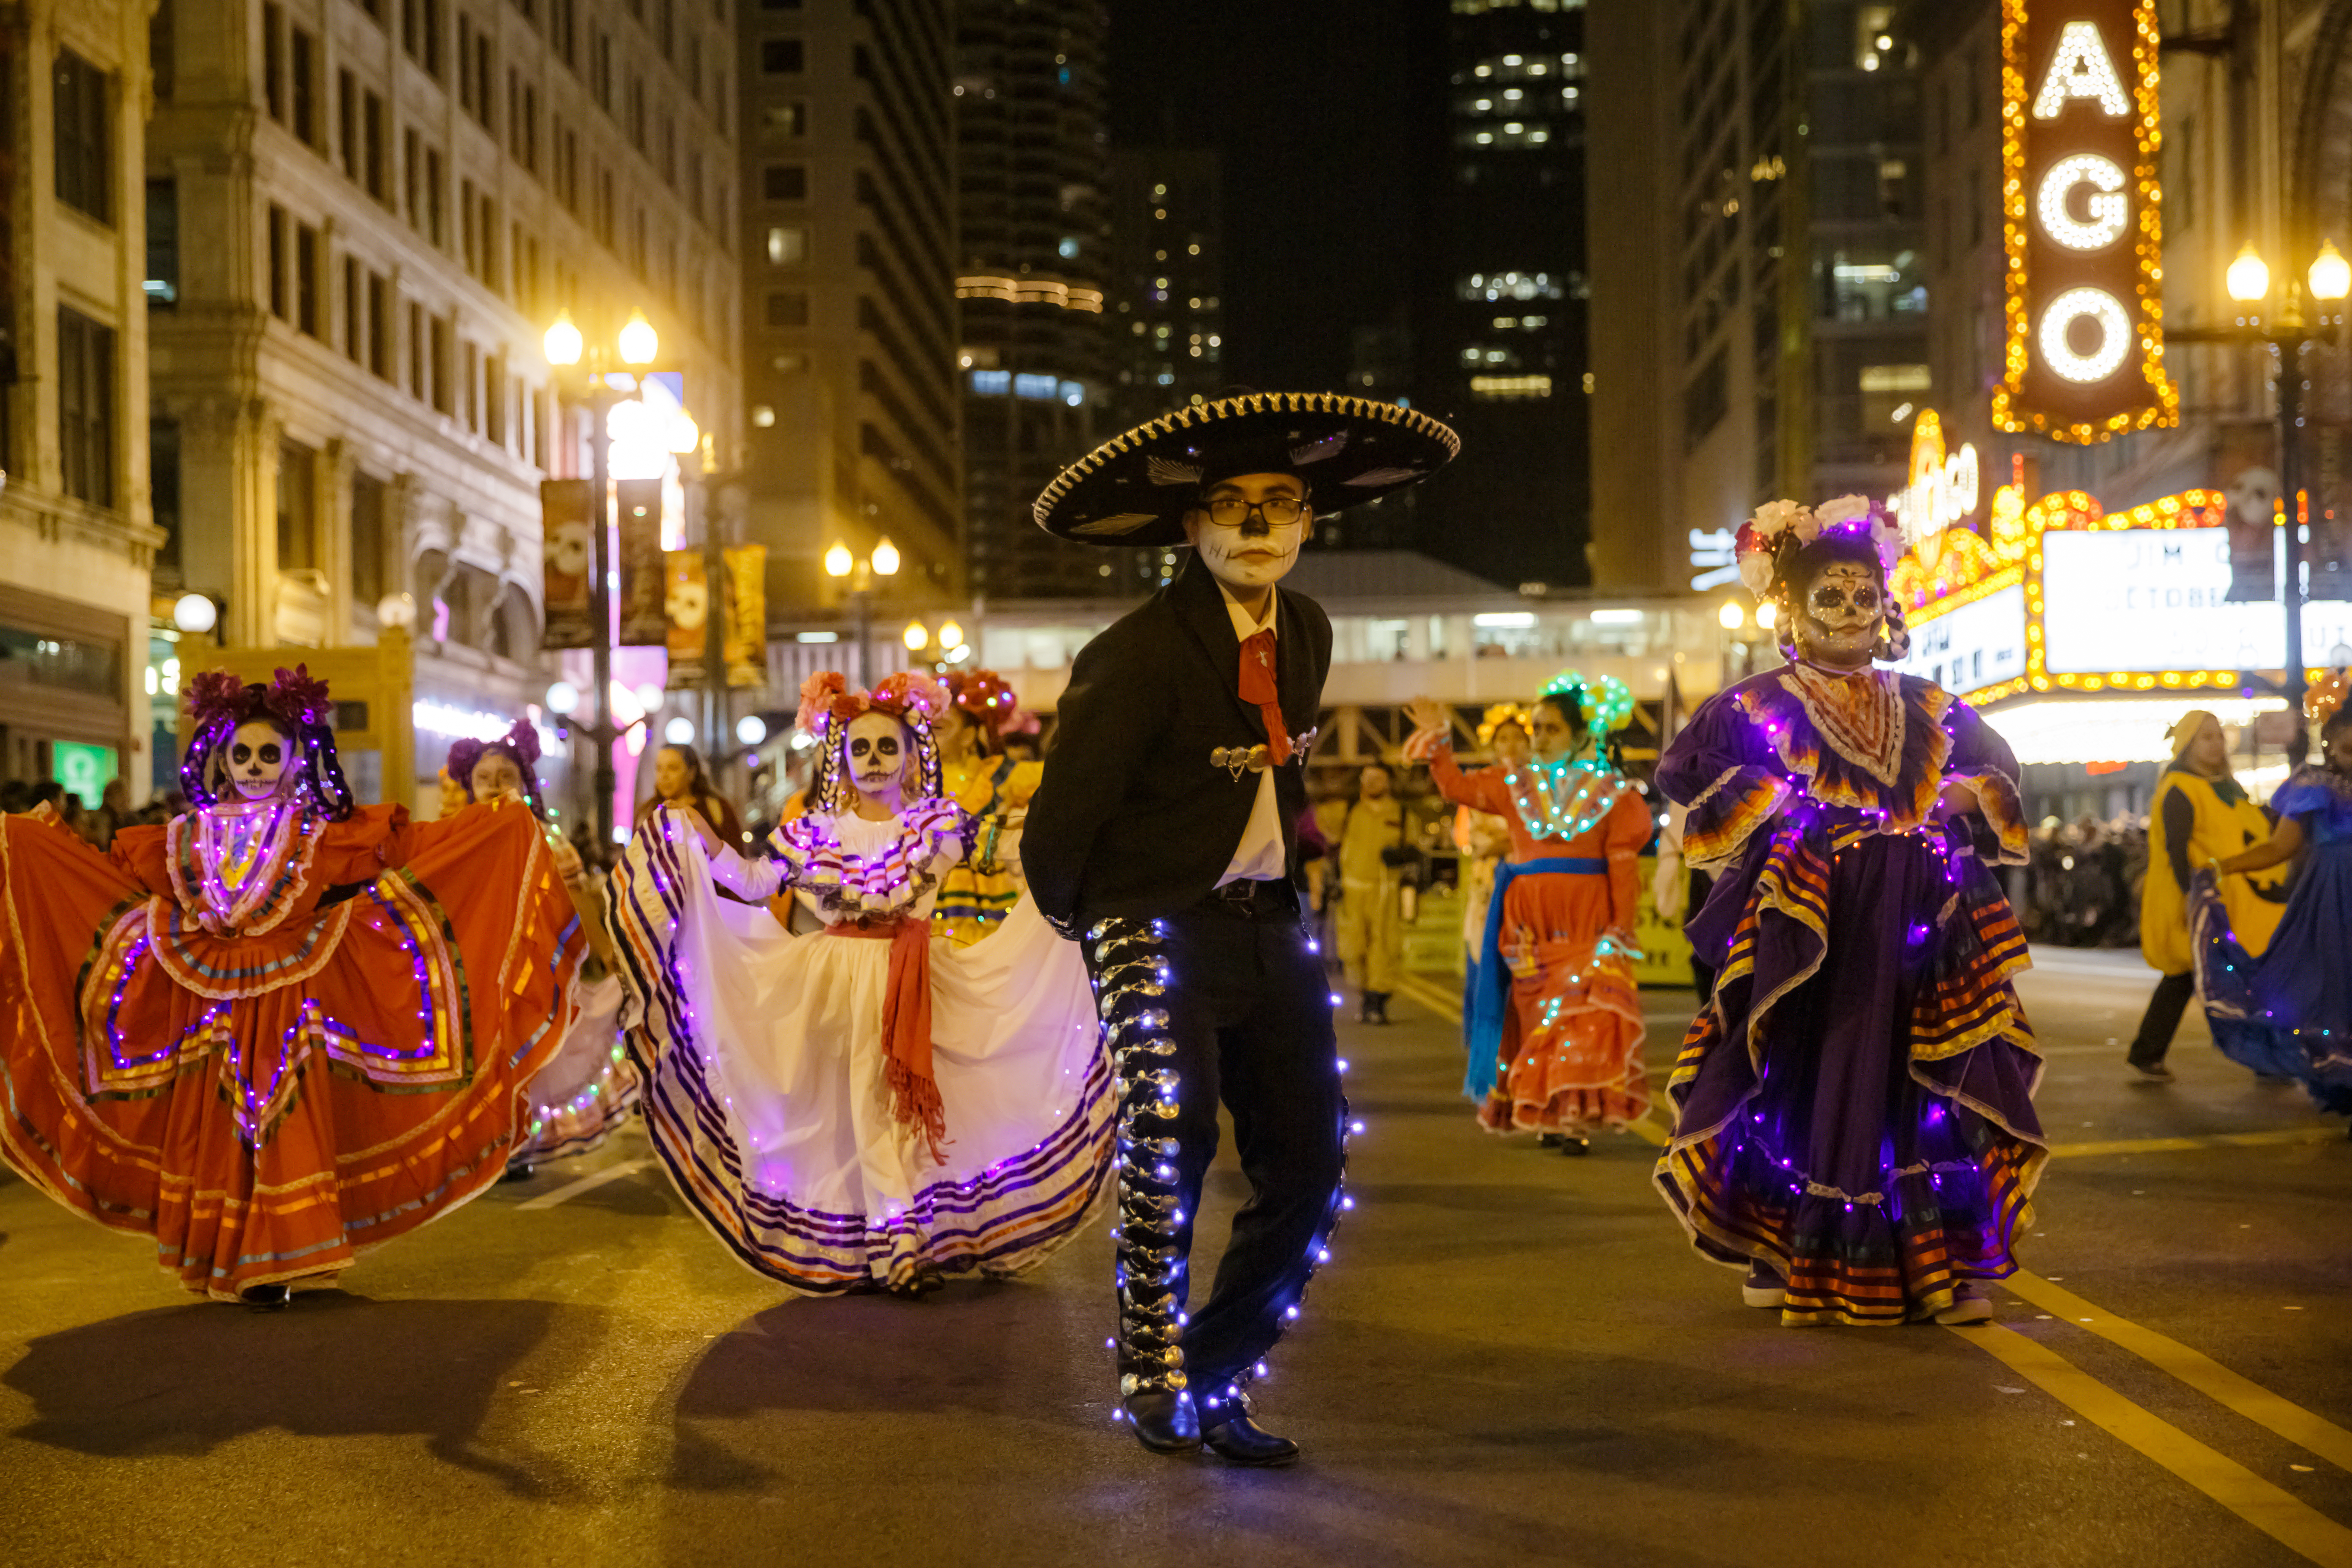 Ballet Folklorico is participating in this year's Arts in the Dark Halloween Parade on Oct. 30.